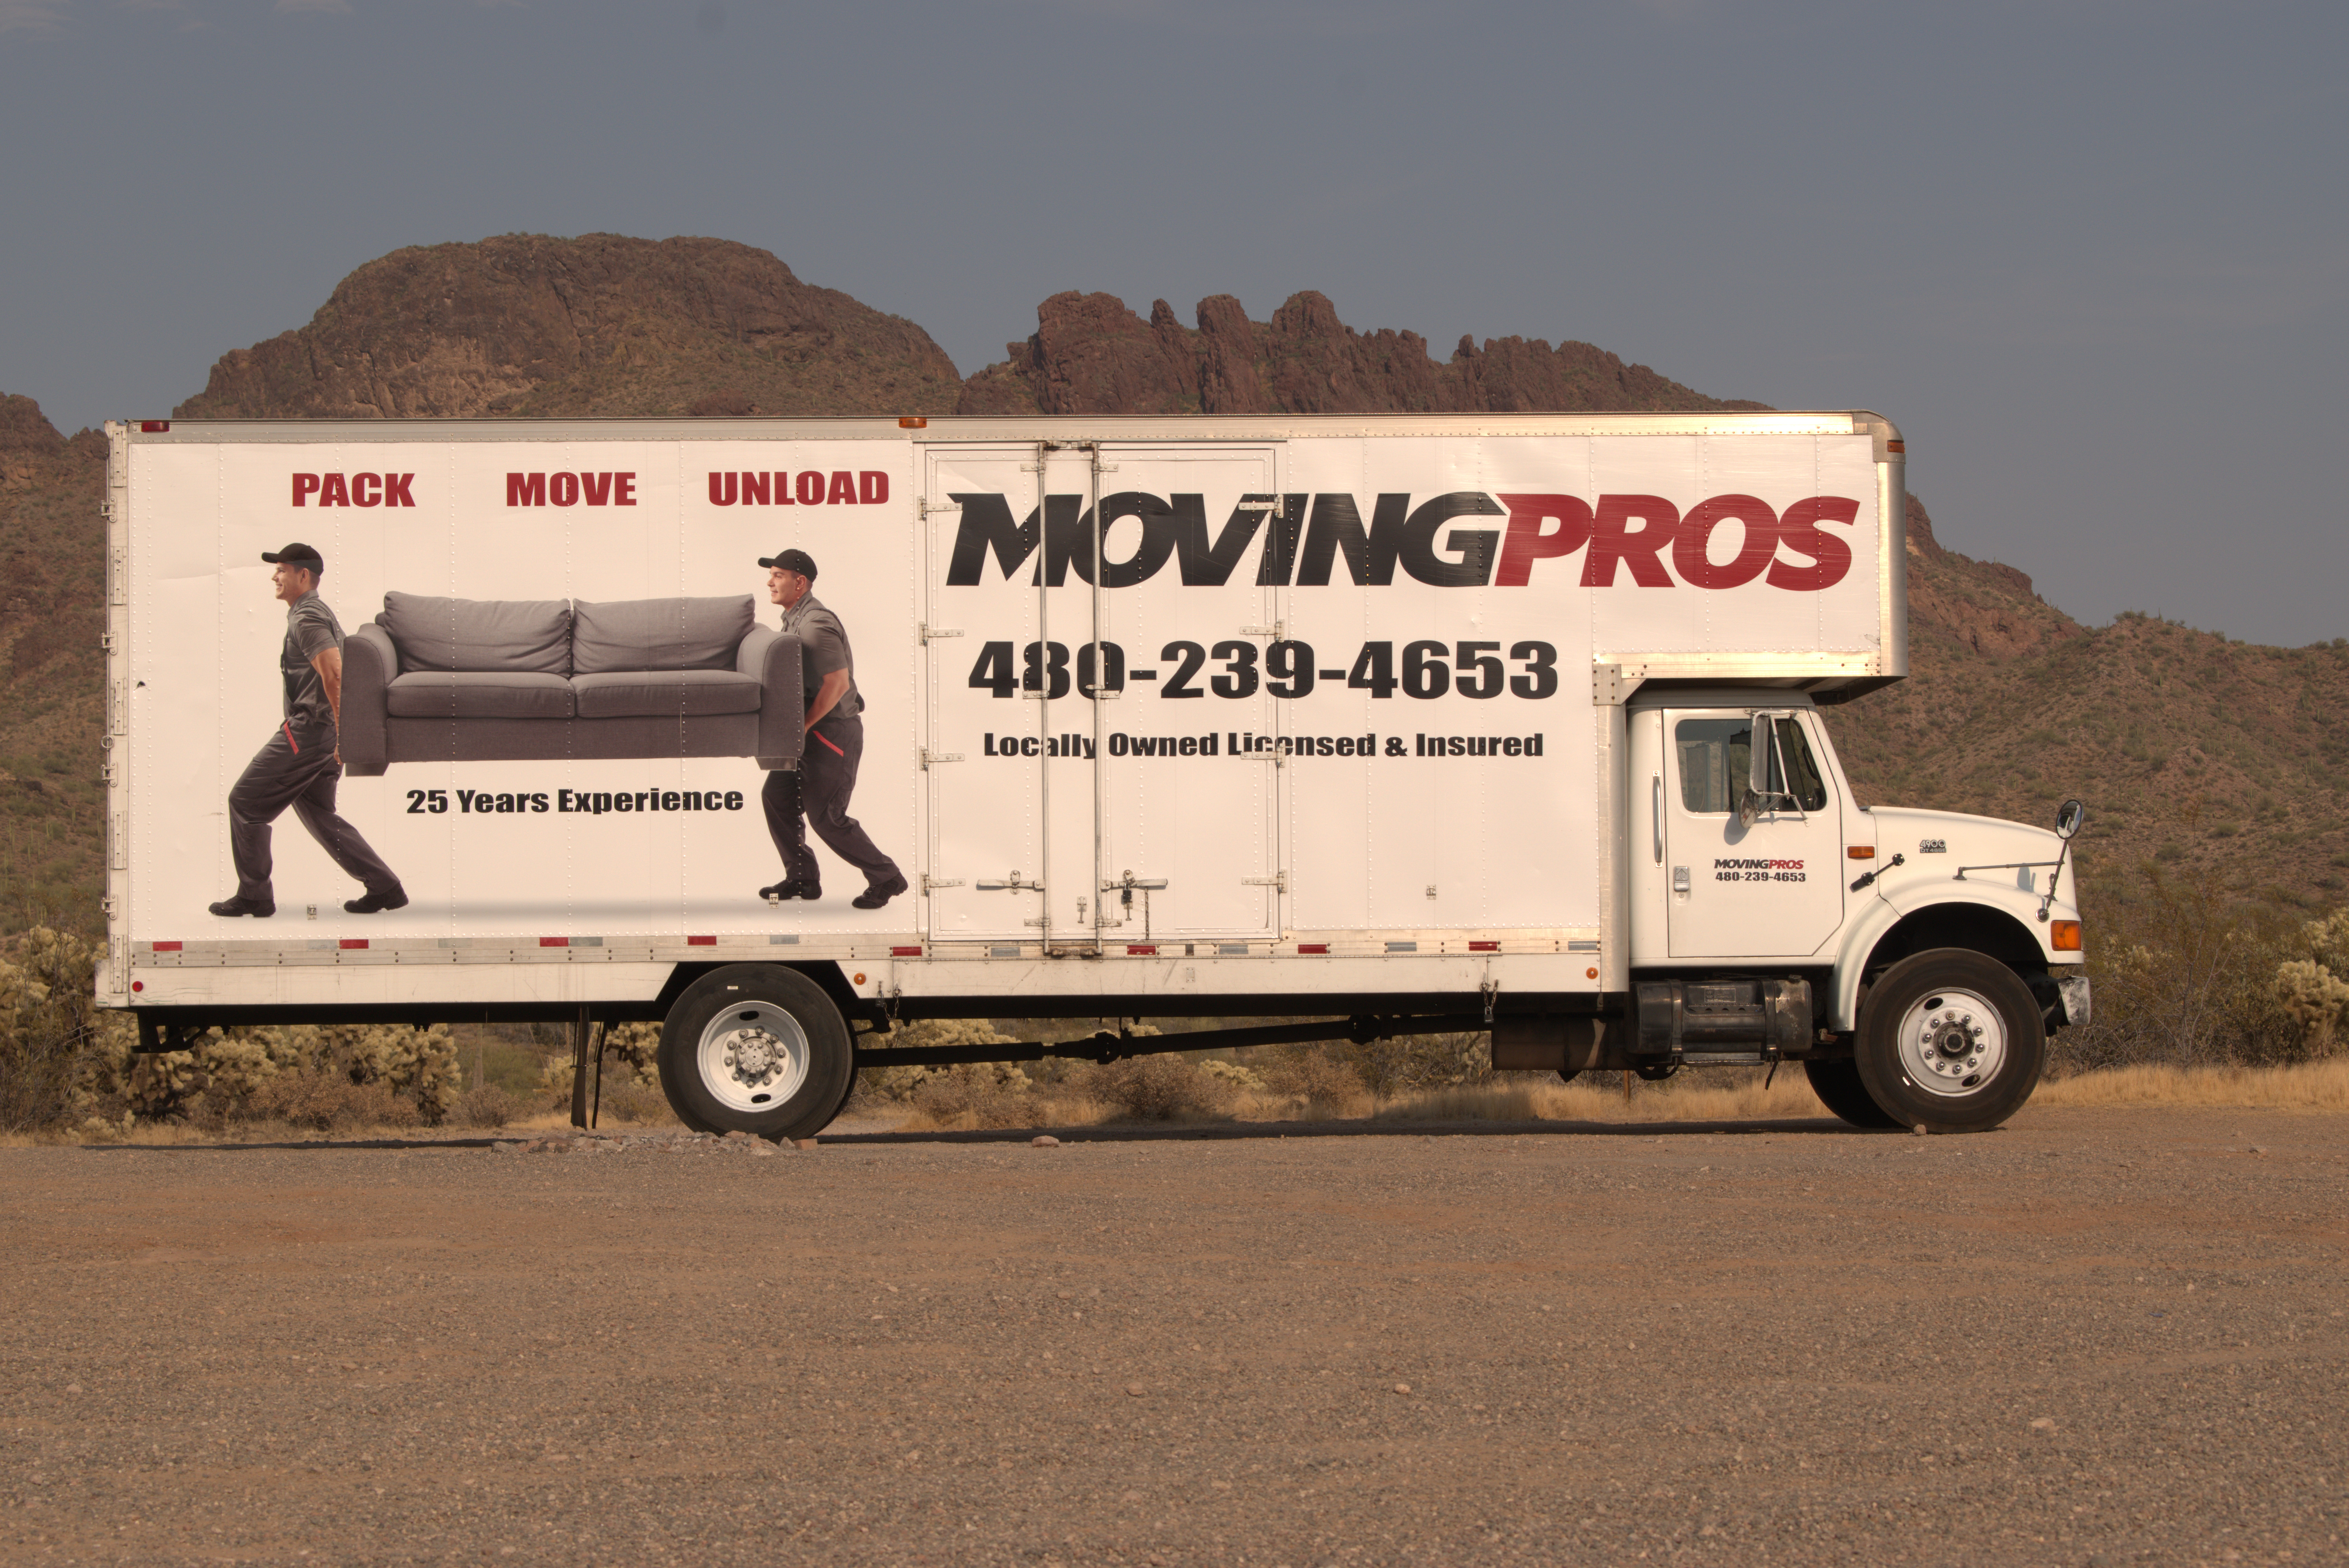 Movingpros Truck